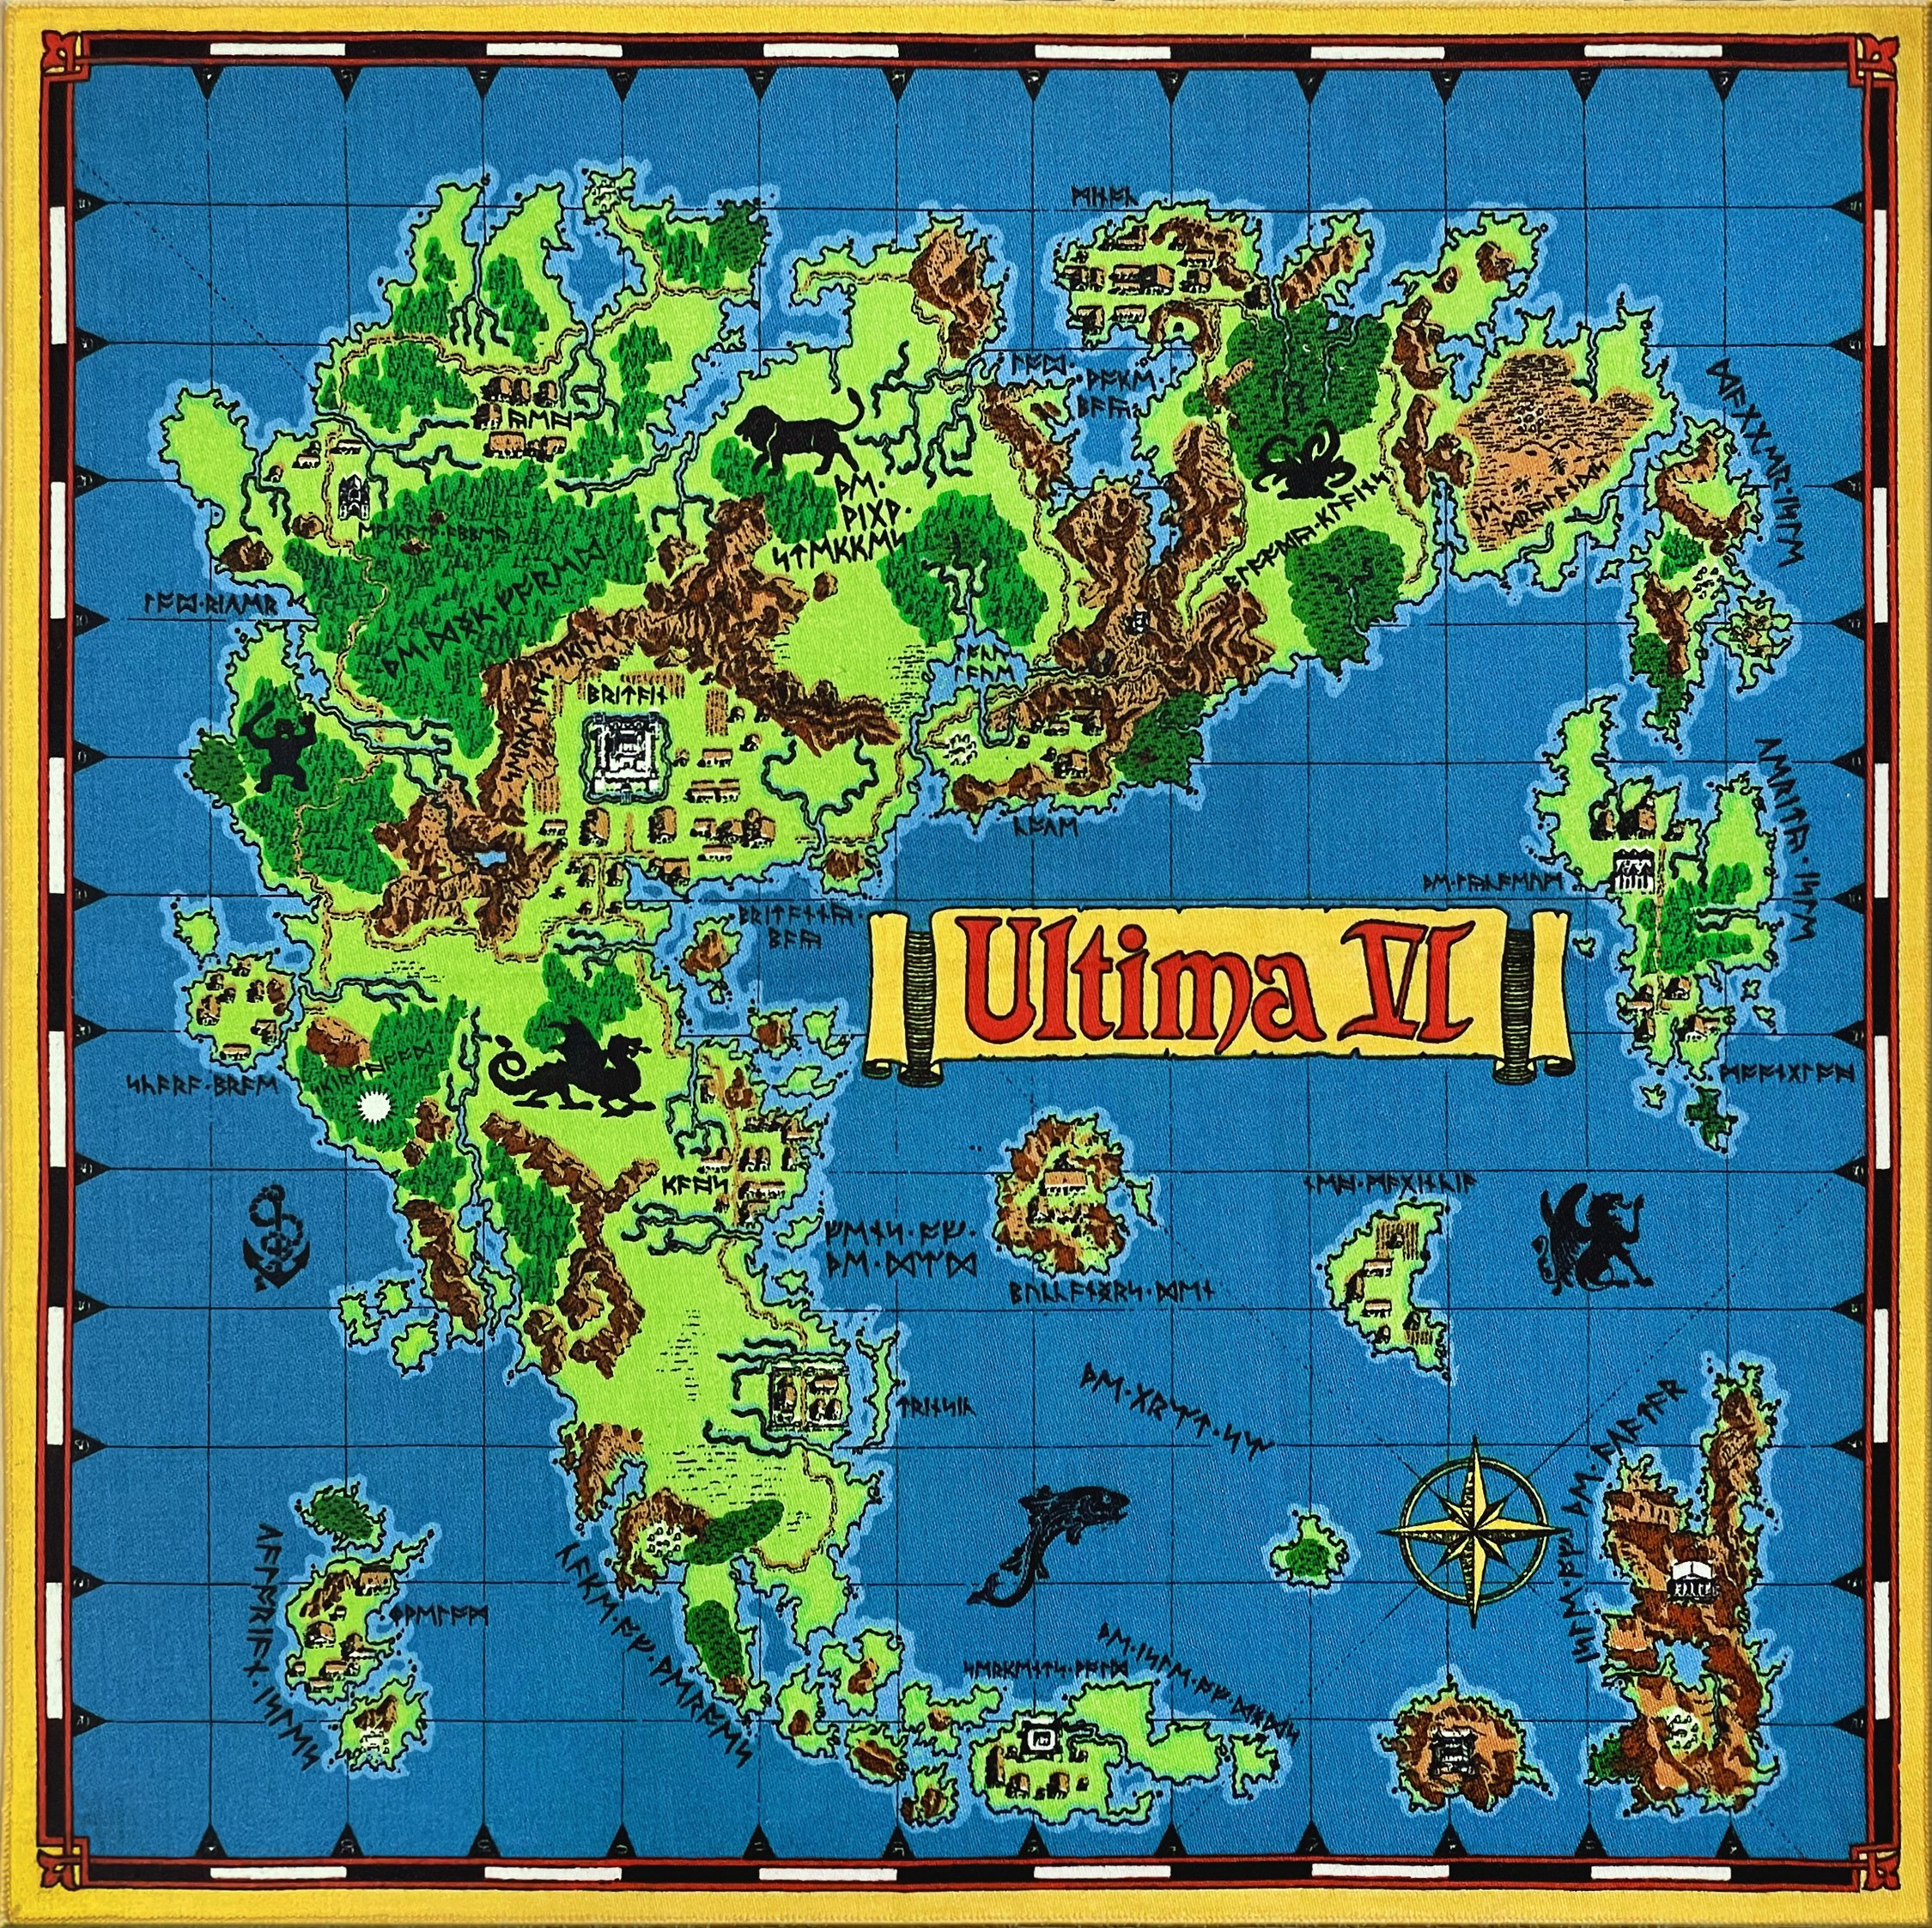 Is The Ultimate RPG's Map Mono-Scale, or Dual-Scale? – The Ultima Kingdoms Of Amalur Reckoning World Map on bioshock world map, kingdom hearts final mix world map, medal of honor warfighter world map, gears of war world map, portal 2 world map, assassin's creed brotherhood world map, witcher 2 map, call of duty modern warfare 3 world map, koa the reckoning map, sleeping dogs world map, binary domain world map, borderlands world map, dark souls world map, kingdoms of alamur reckoning, koa reckoning world map, house of valor on map, red dead redemption world map, command and conquer red alert 3 world map, reckoning game map,